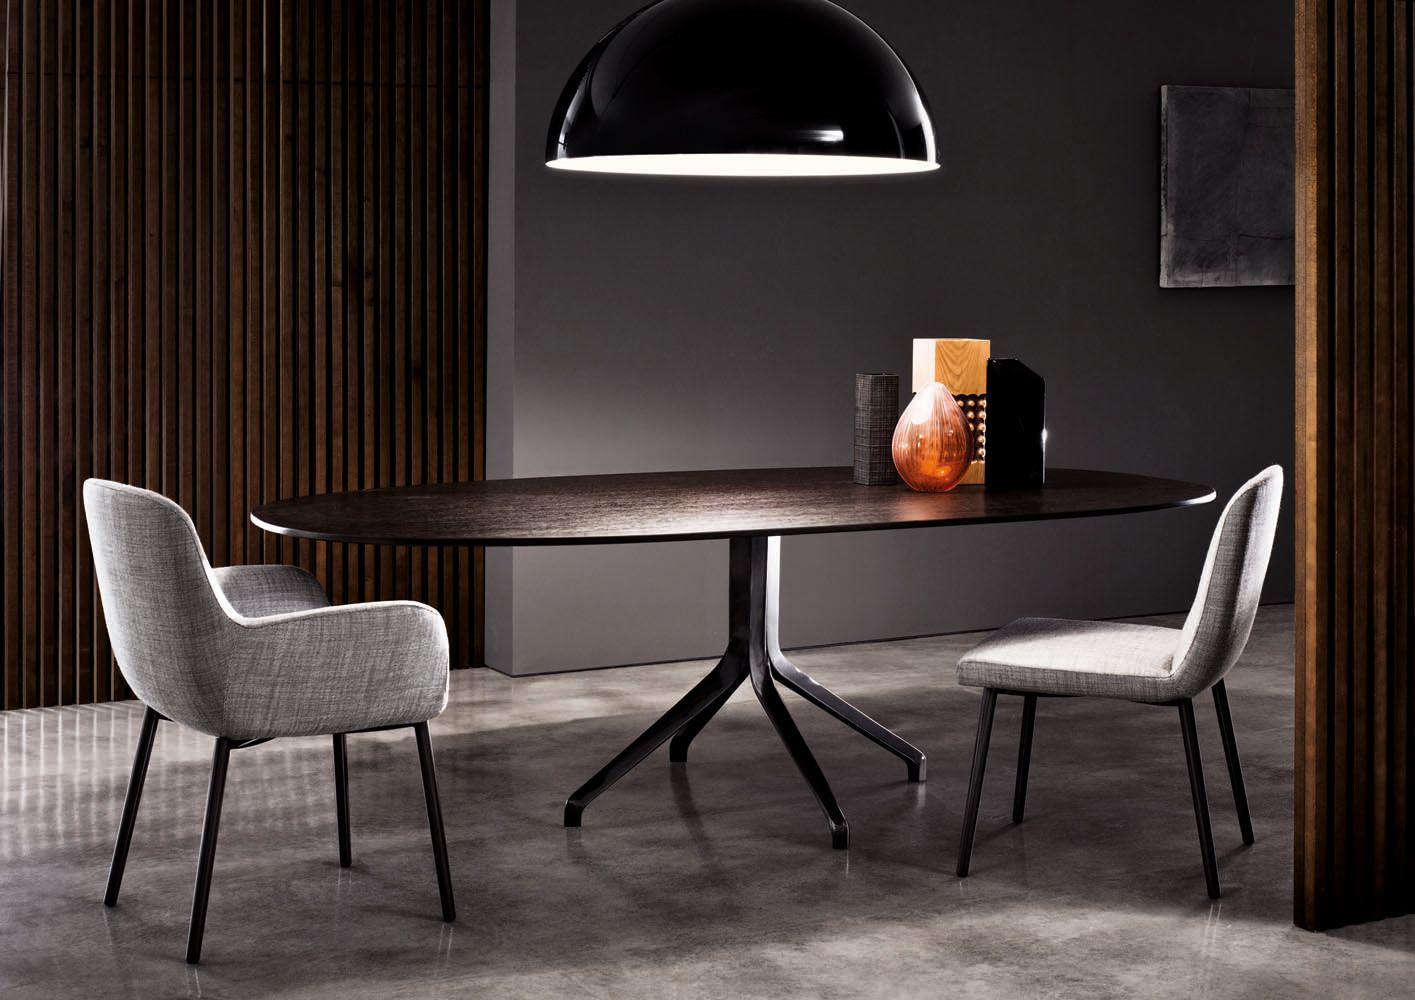 Uncategorized Minotti Dining Table black walnut dining table chairs google search search